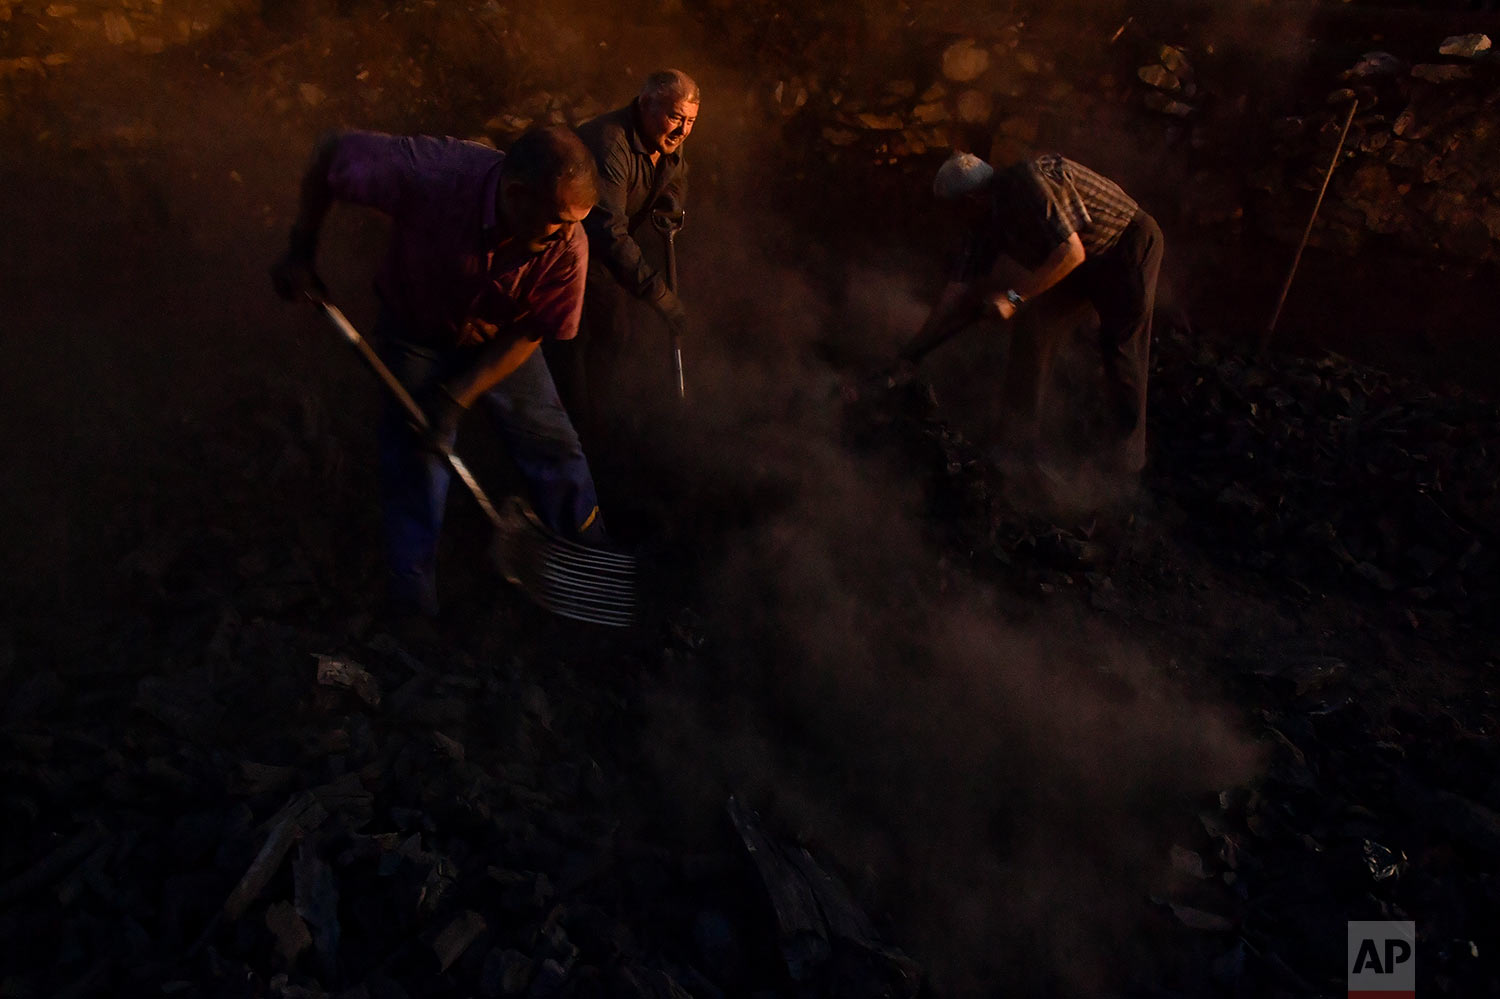 In this Tuesday, Sept.11, 2018 photo, Jesus Luis Remiro, center, picks up charcoal with his brother, Salvador, right, and Jose Mari Nieva, left, as part of a process to produce traditional charcoal in Viloria, northern Spain. (AP Photo/Alvaro Barrientos)